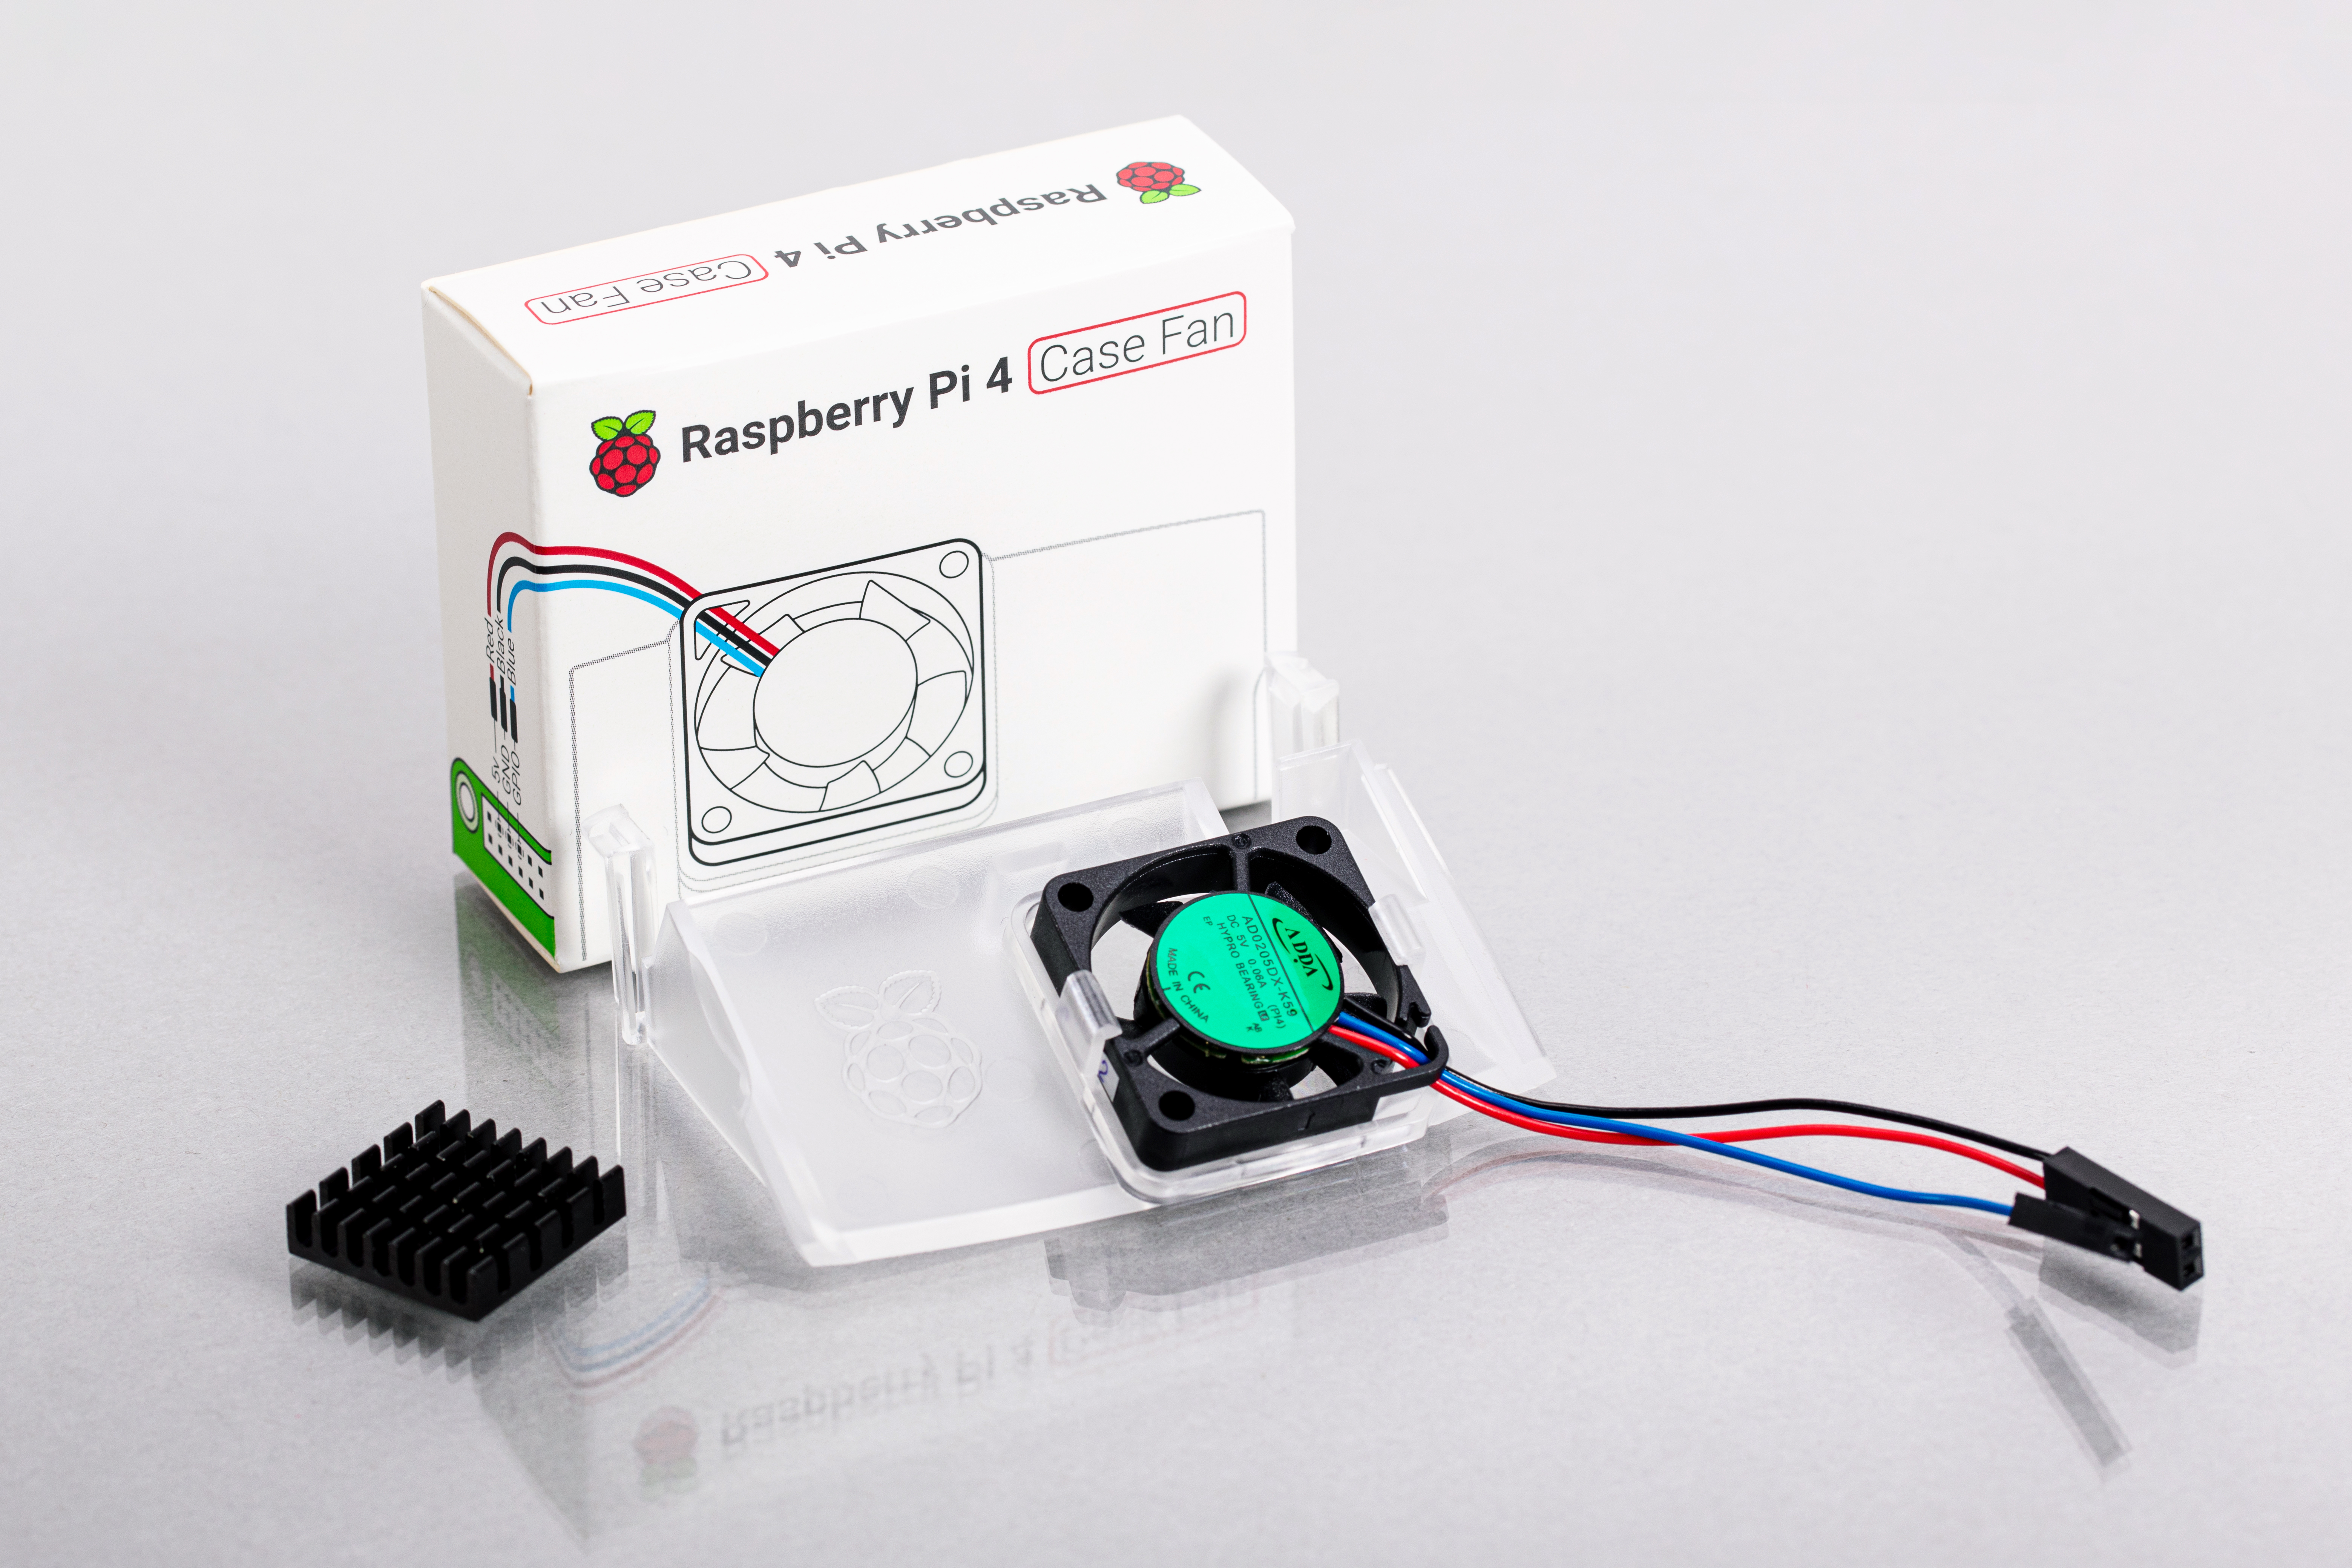 Raspberry Pi 4 Case Fan